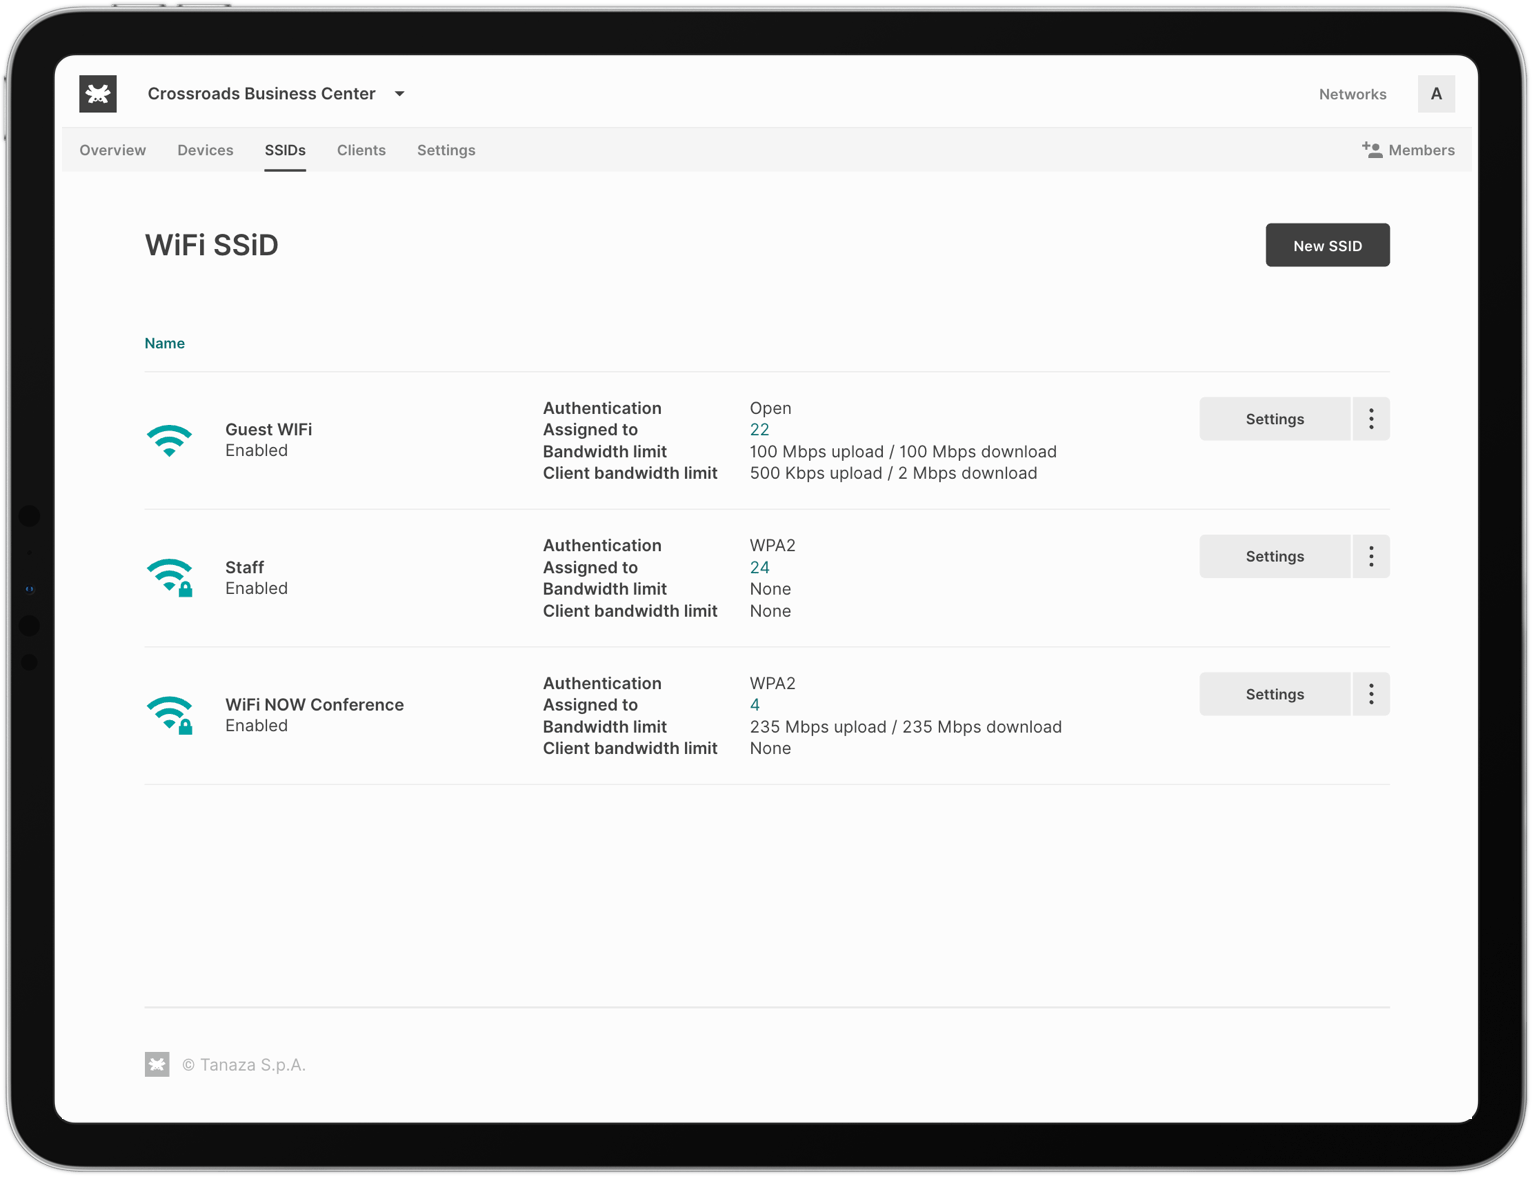 Configure and Manage WiFi Networks from the Cloud - WiFi Cloud Management